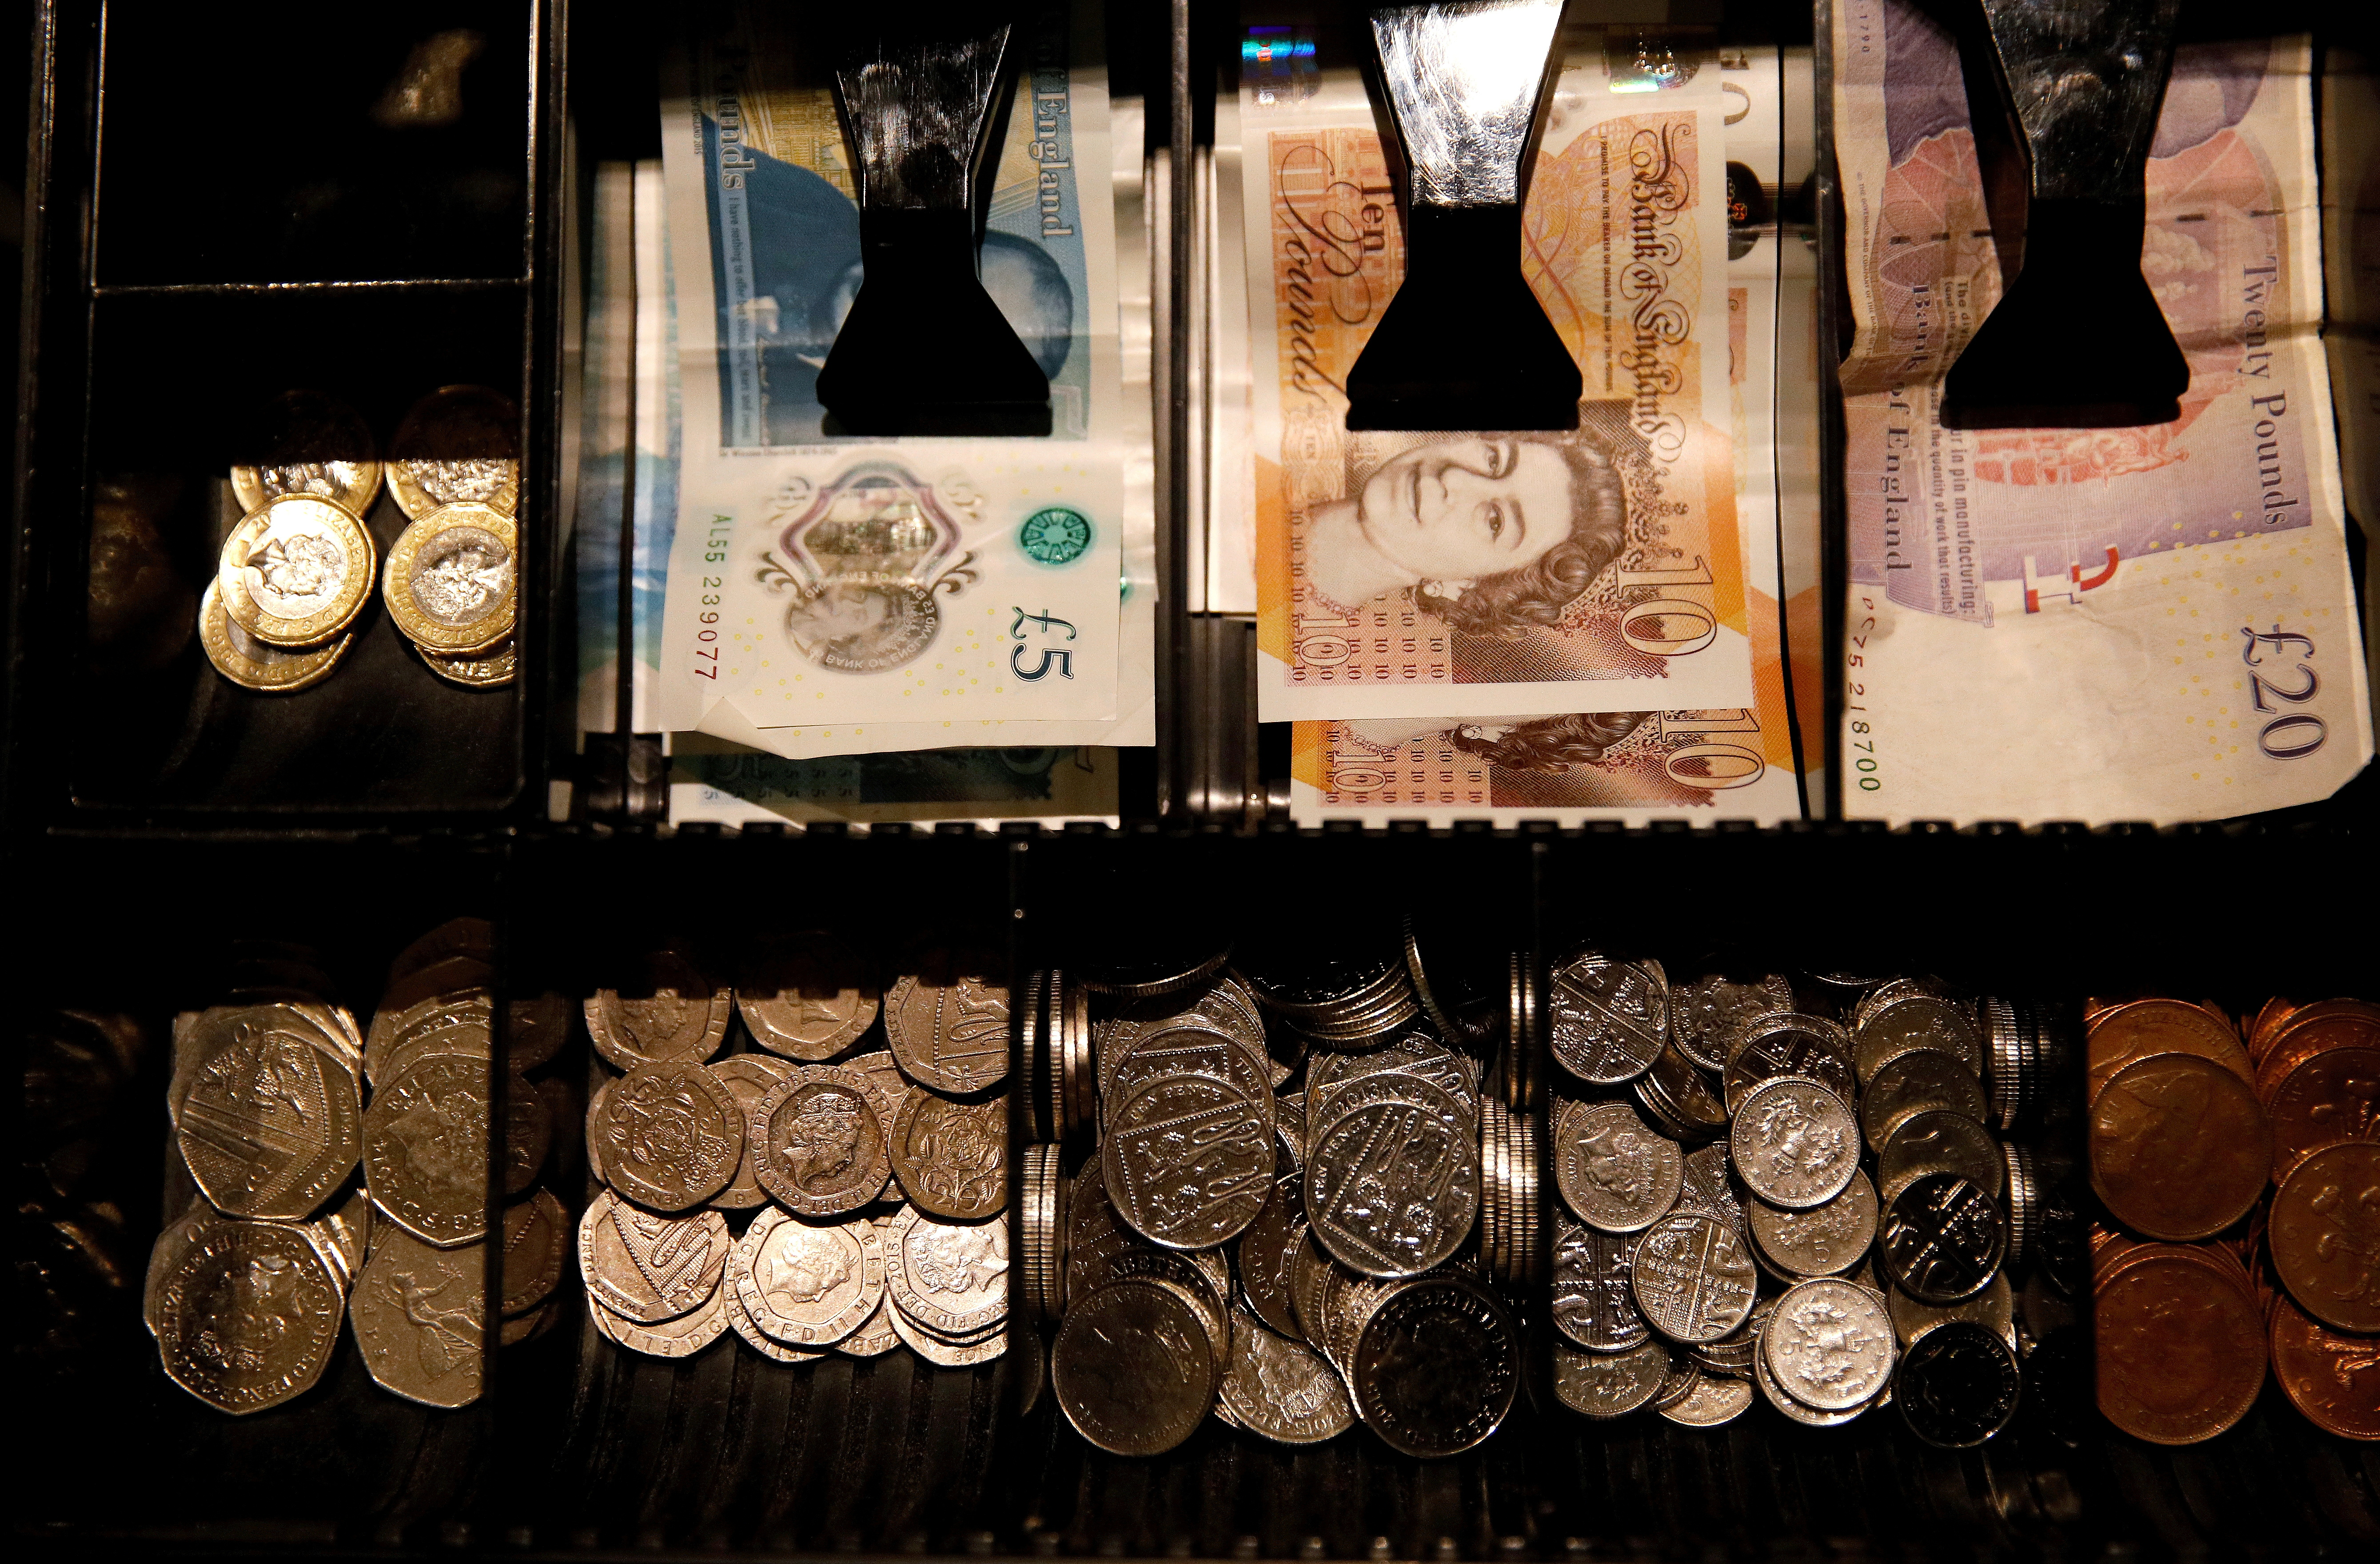 Pound Sterling notes and change are seen inside a cash resgister in a coffee shop in Manchester, Britain, Septem,ber 21, 2018. REUTERS/Phil Noble/File Photo